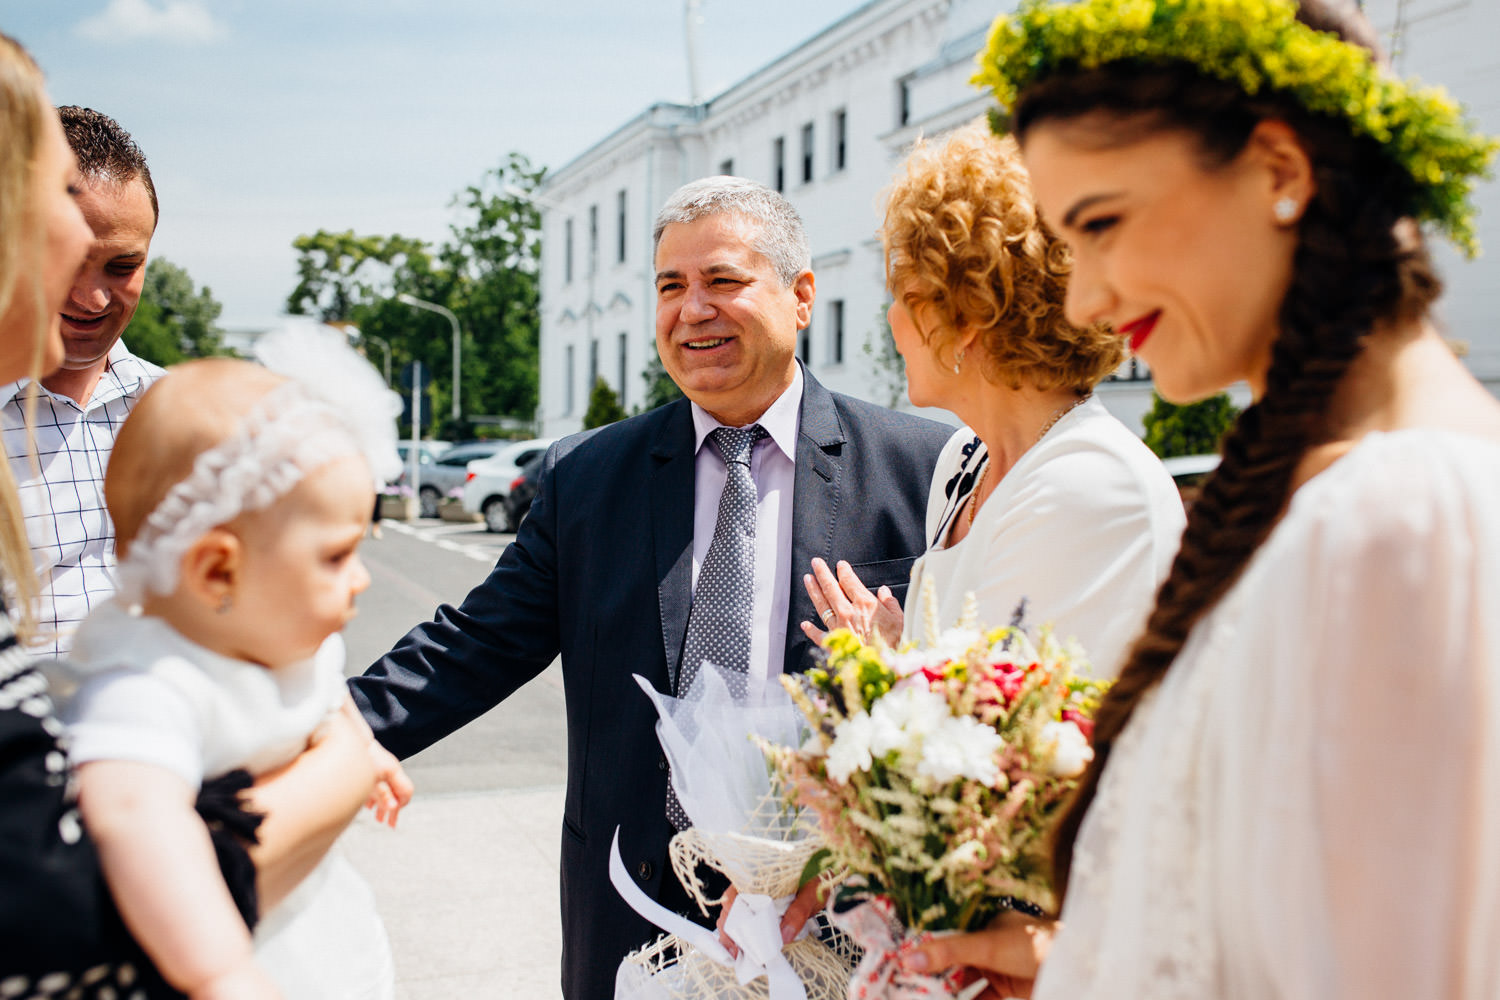 Bogdan & Luiza civil wedding Pitesti-1005